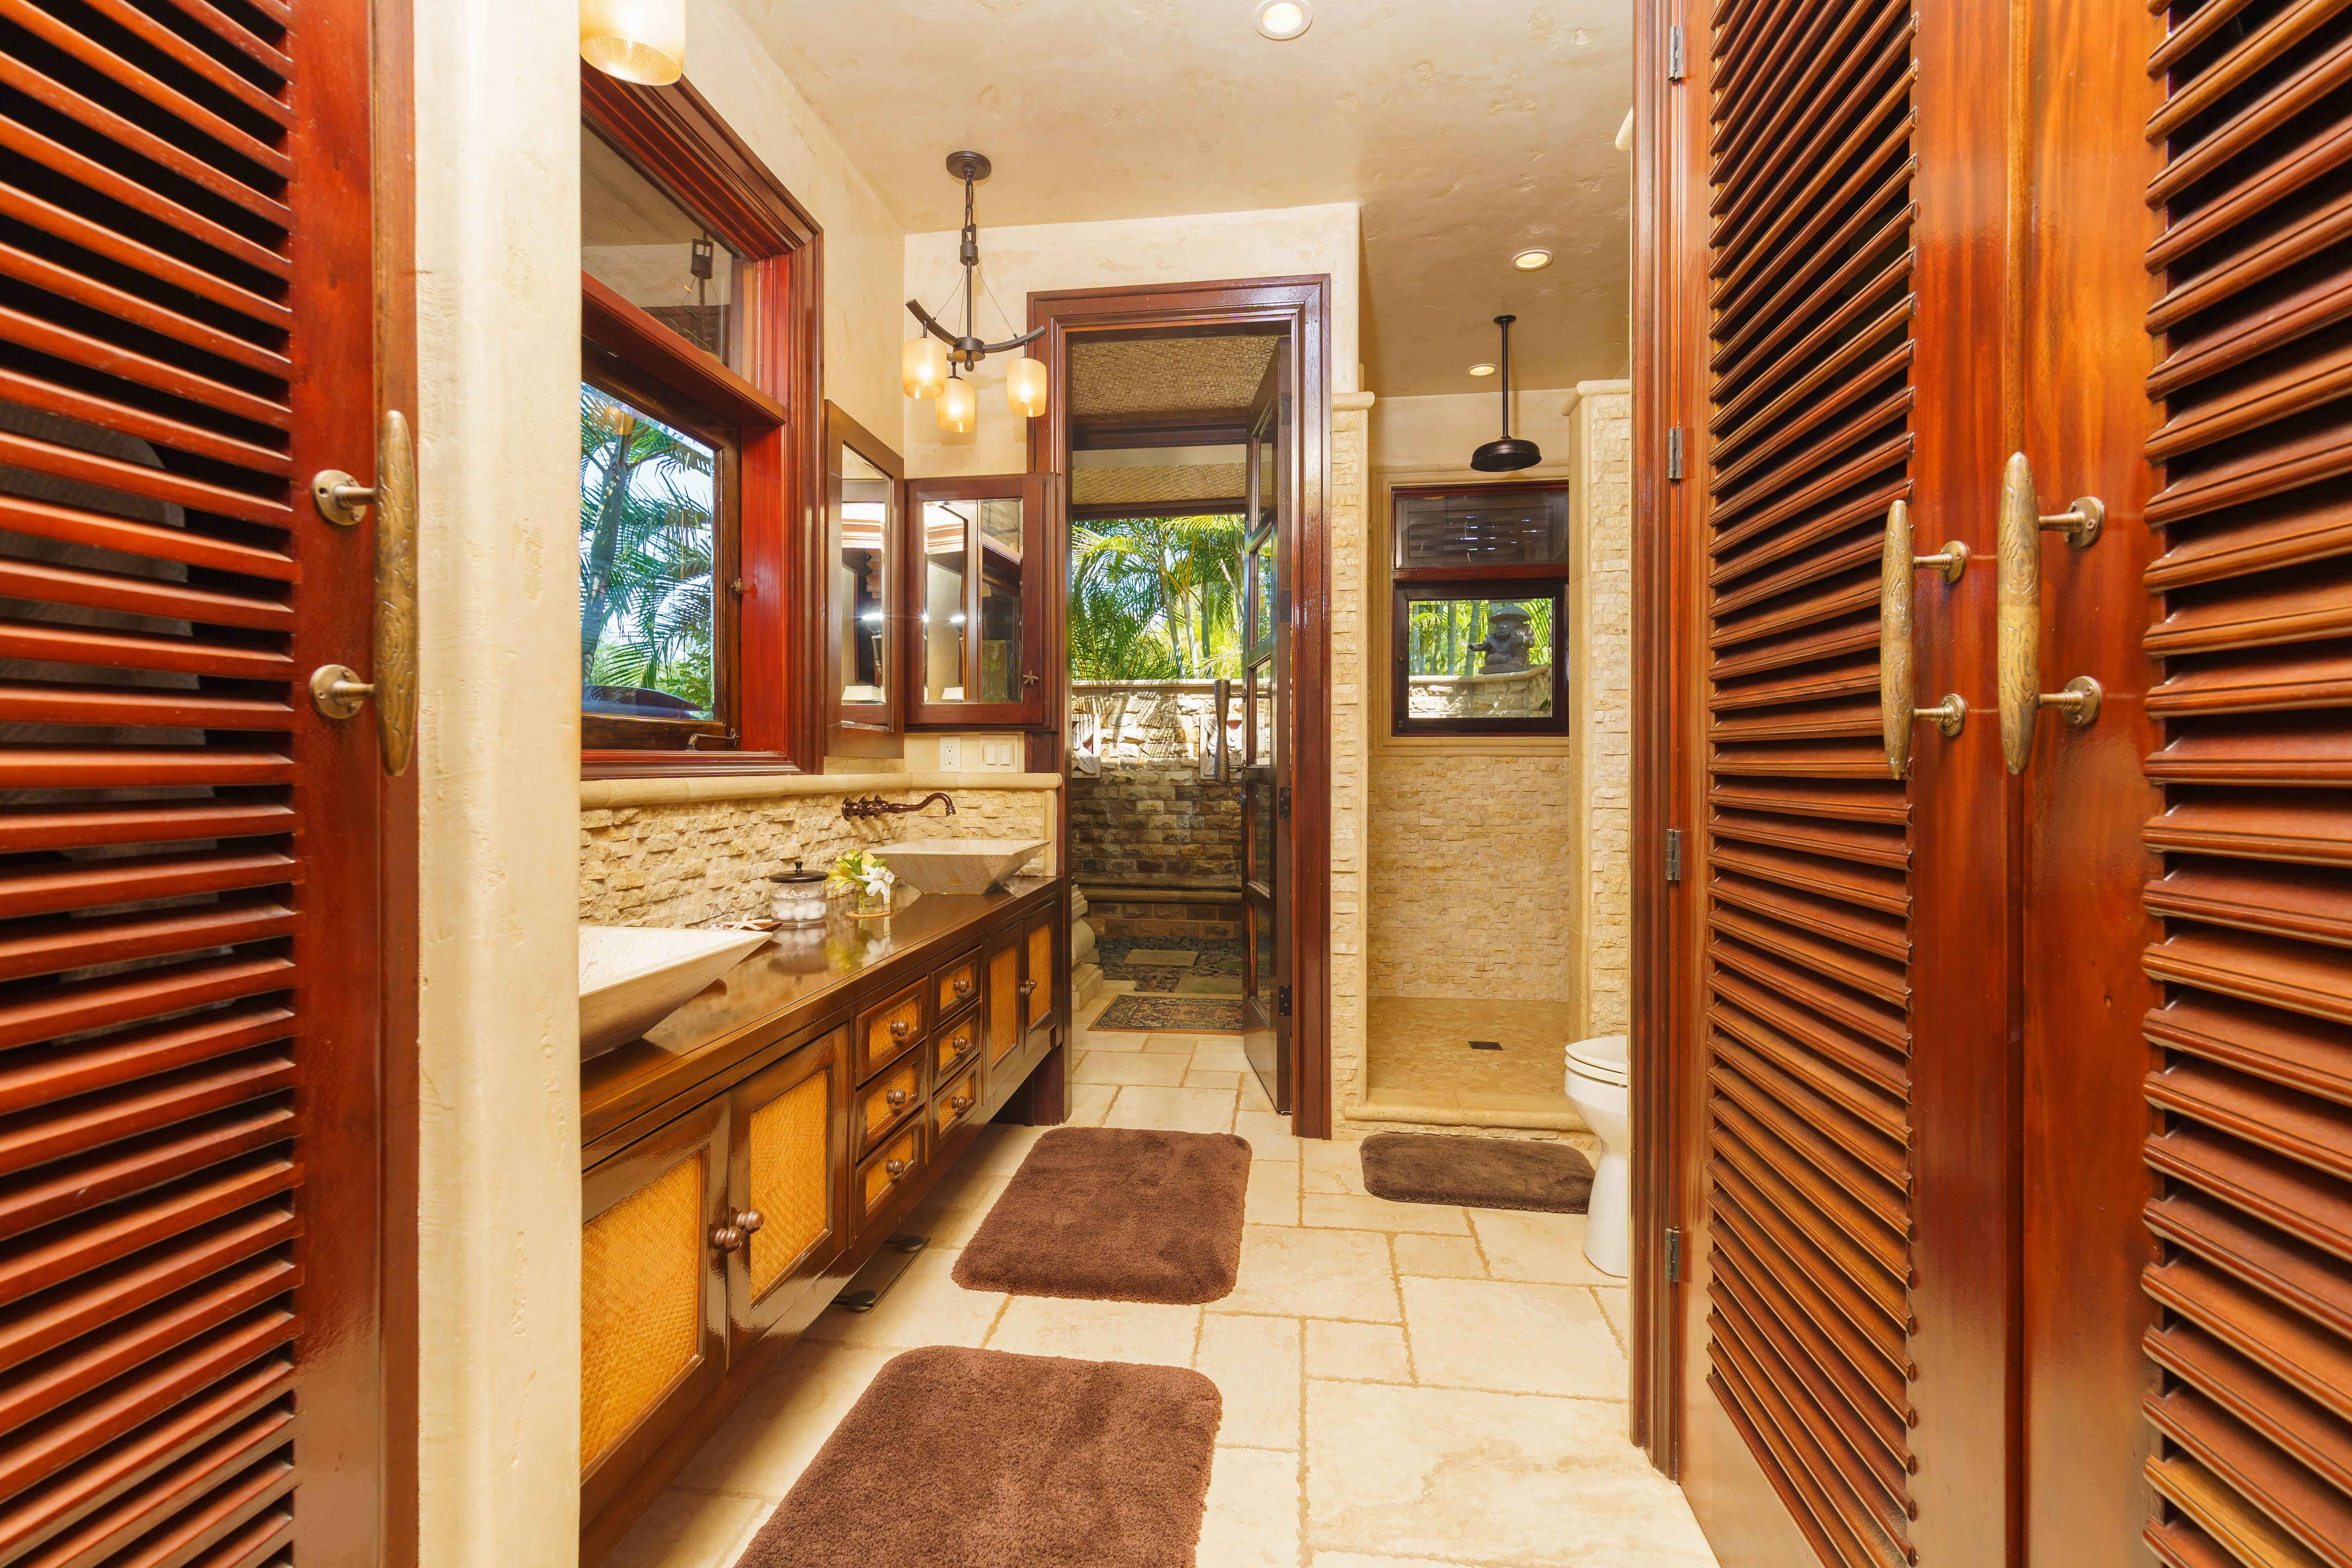 bathroom at Balinese-style estate in Launiupoko maui